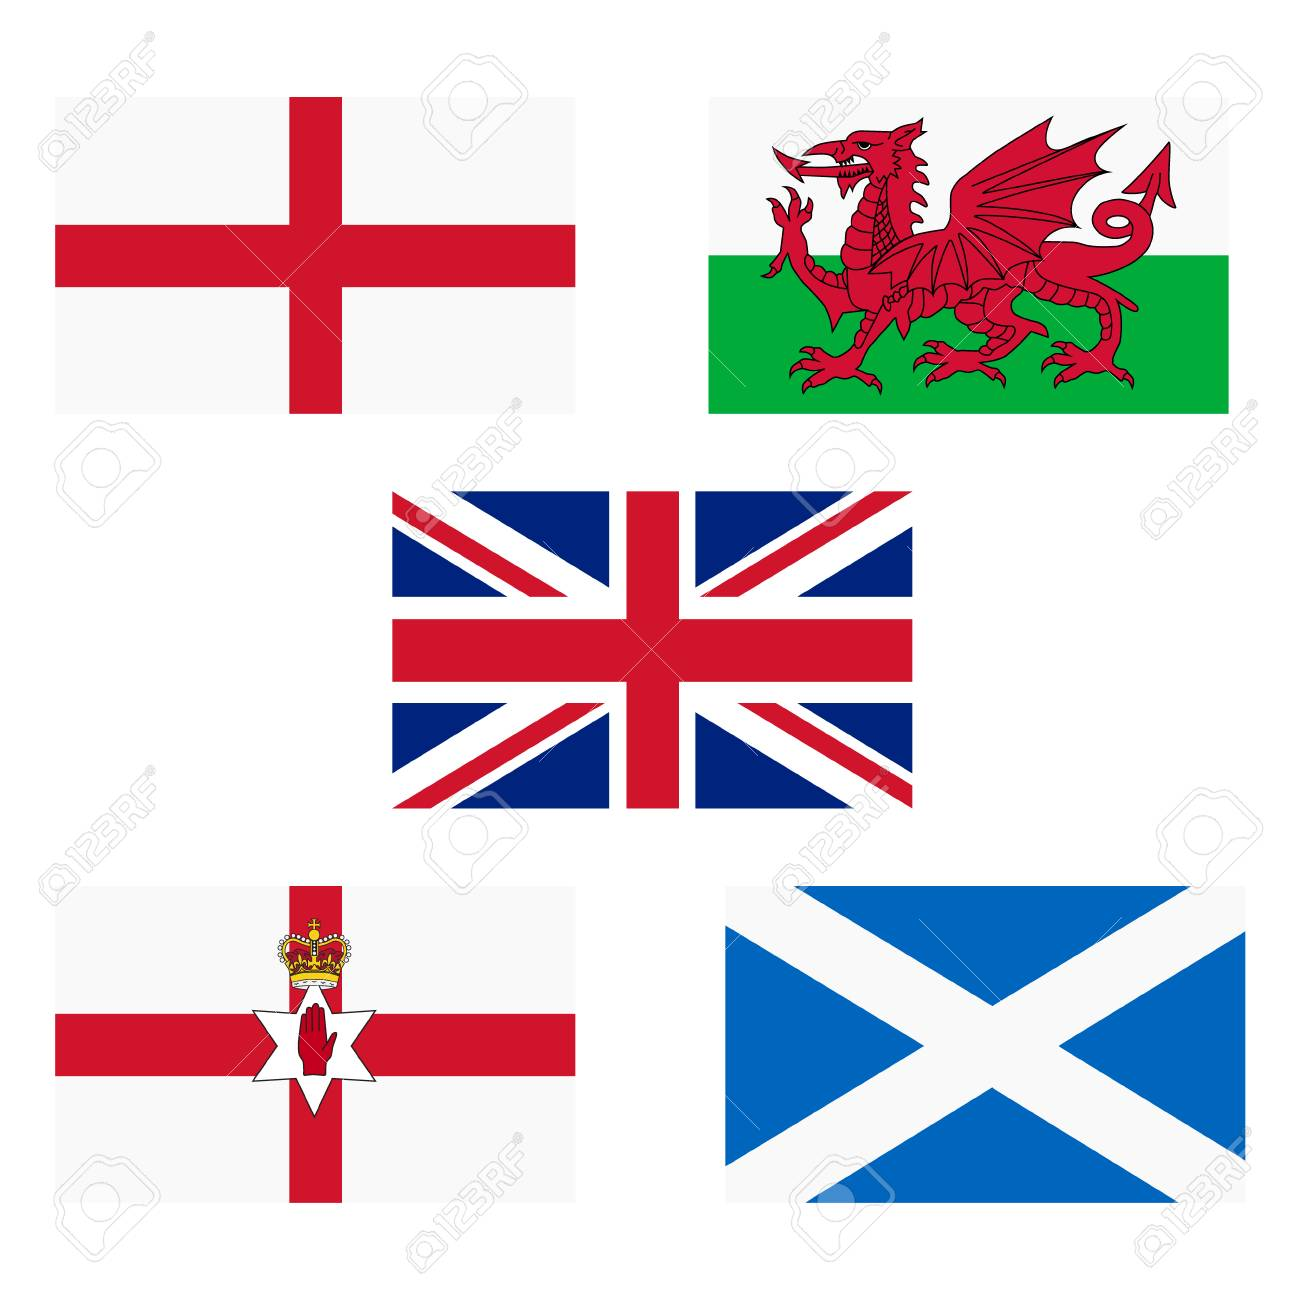 Raster illustration flags of UK, England, Scotland, Wales and